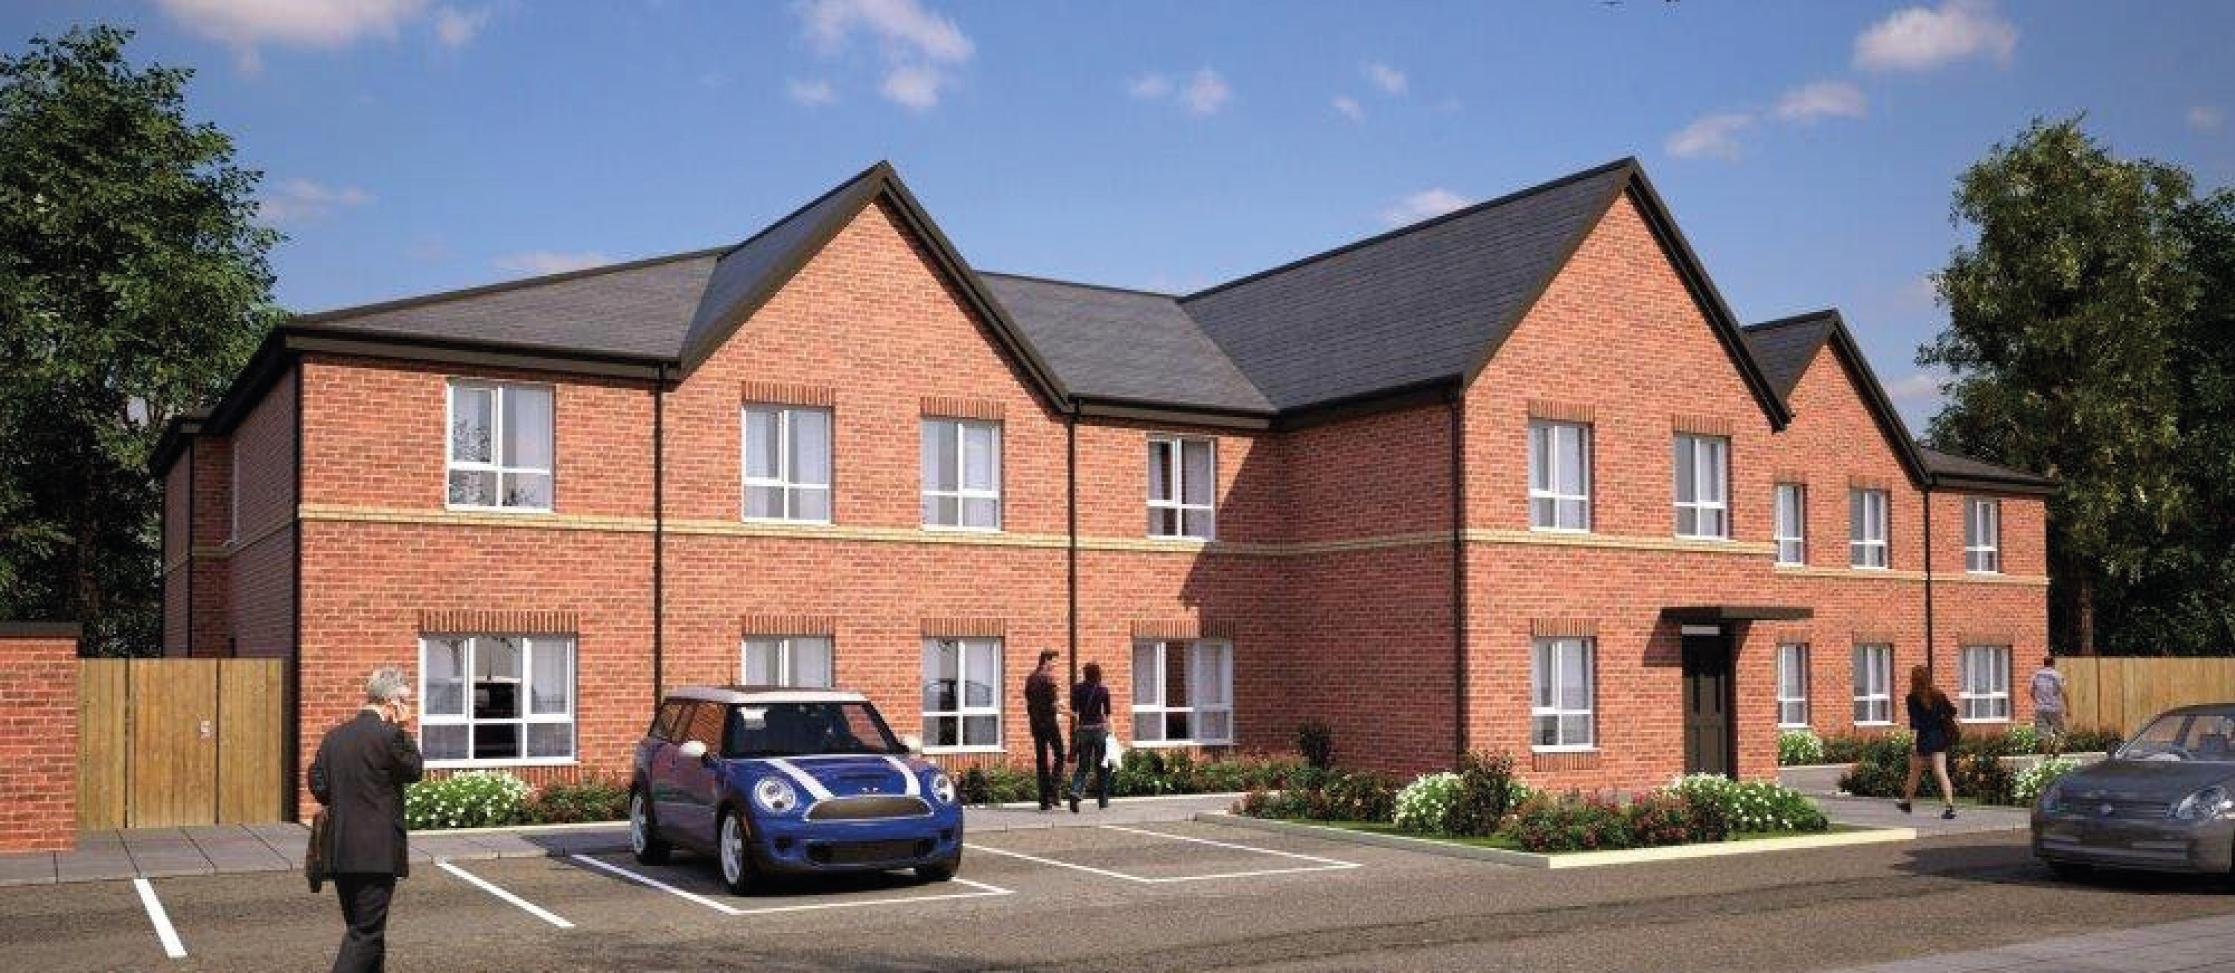 Mears was appointed to build 'The Hollies', a brand new supported housing scheme in partnership with Bolton Council and HB Villages.